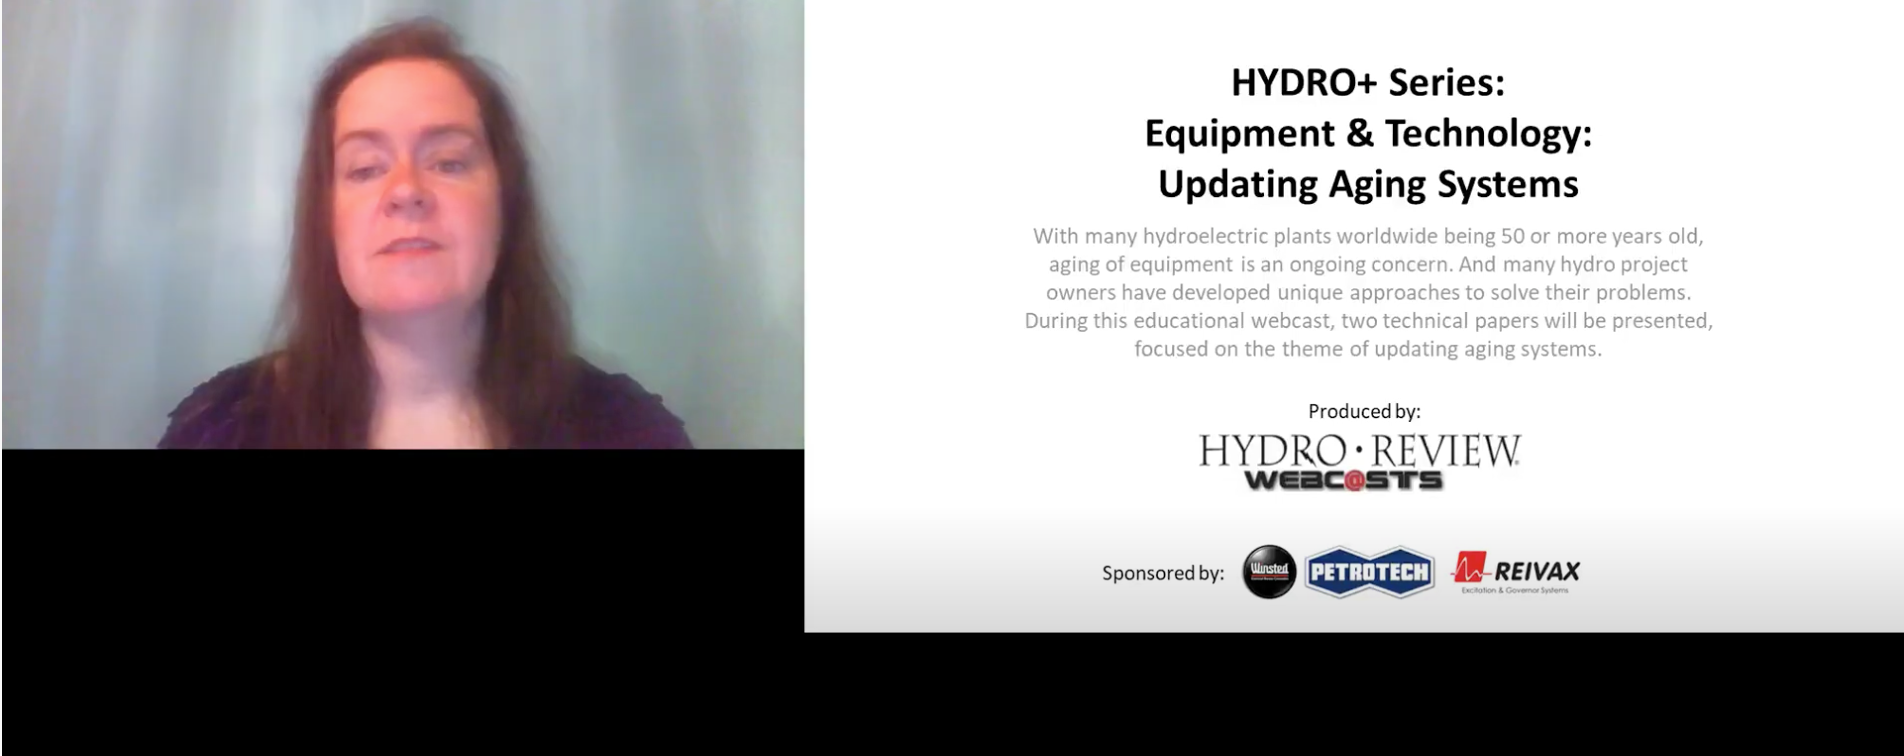 HYDRO+ Series Episode 7: Equipment and Technology: Updating Aging Systems